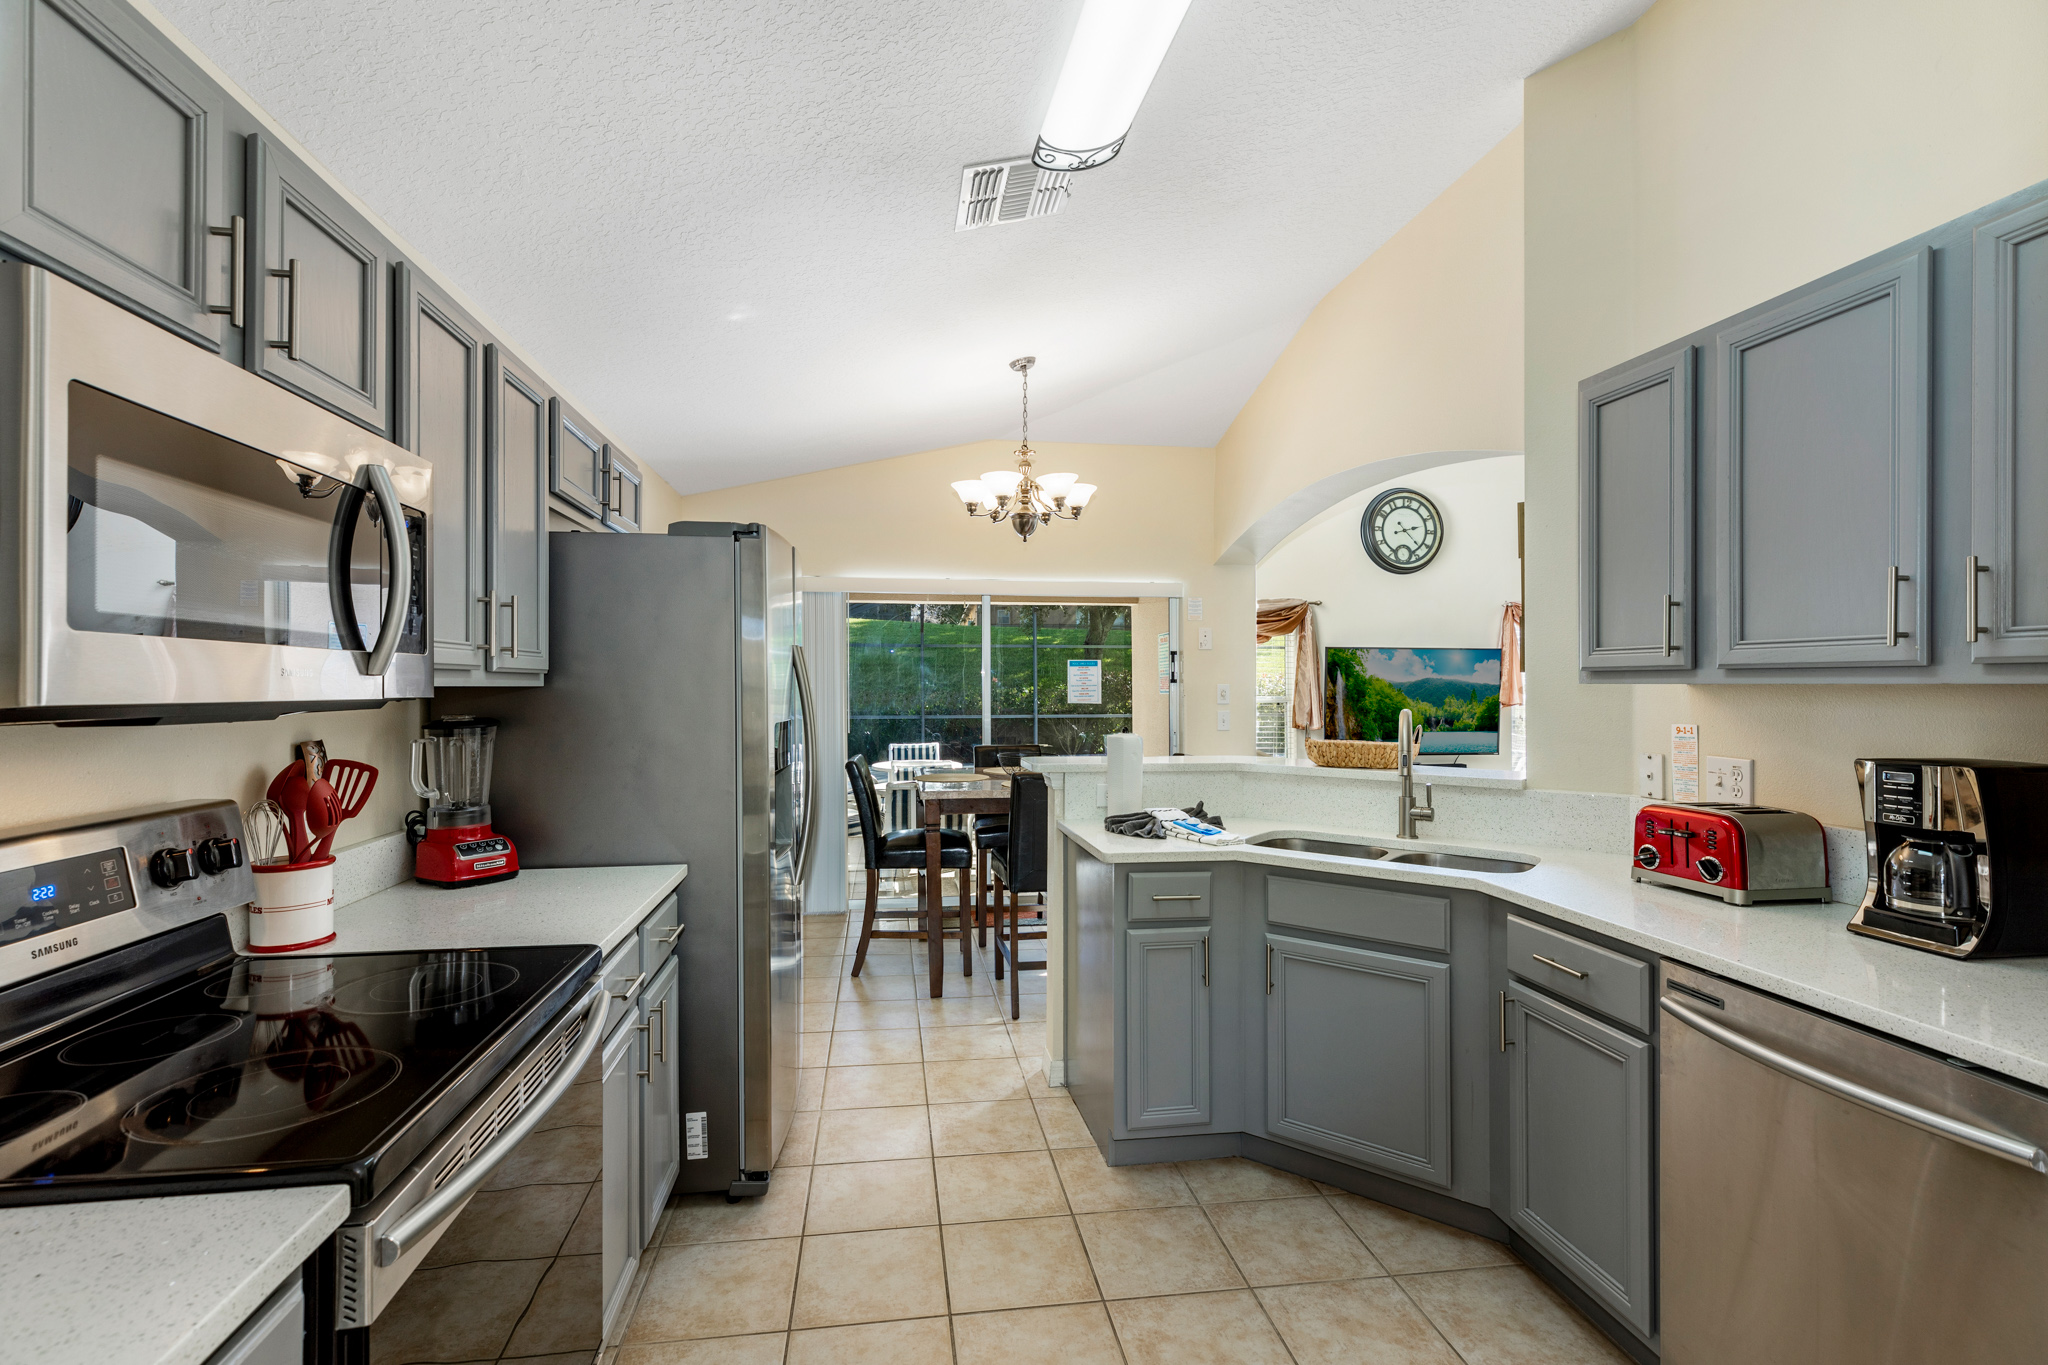 Perfect Home - Perfect Location!-128811